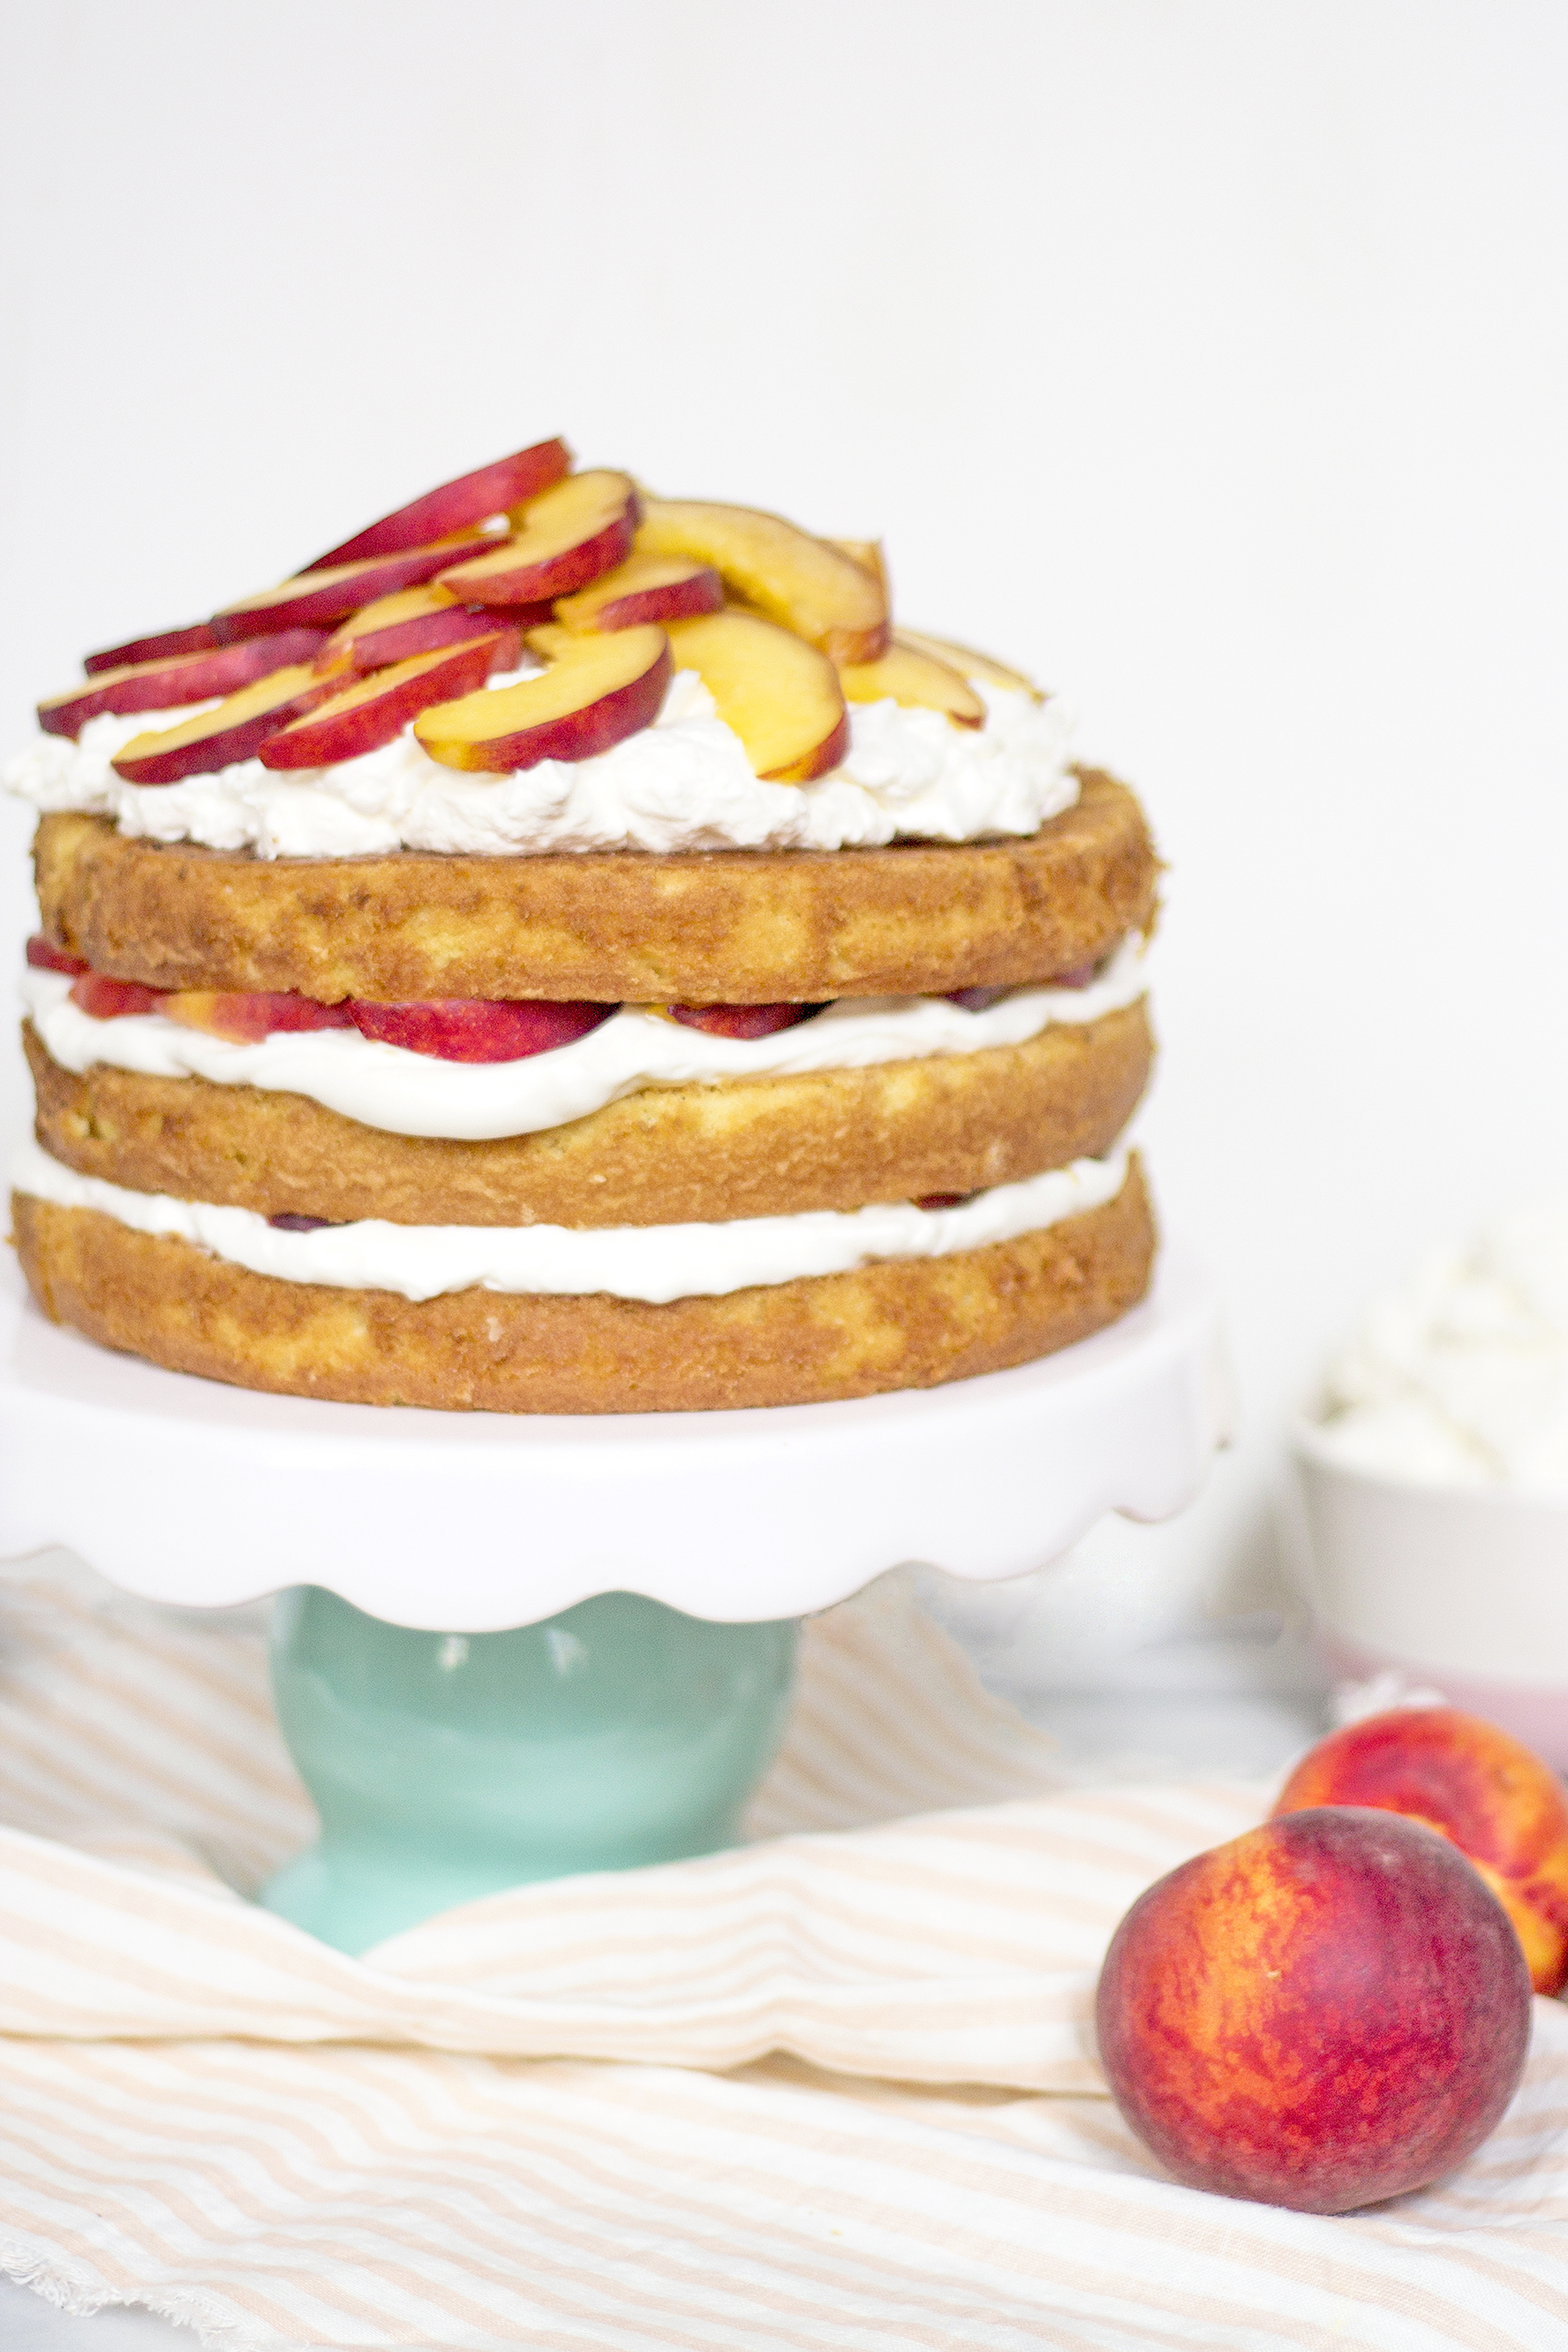 A shortcake filled with homemade whipped cream and fresh peaches. Perfect for summer! Get the recipe: Unusuallylovely.com